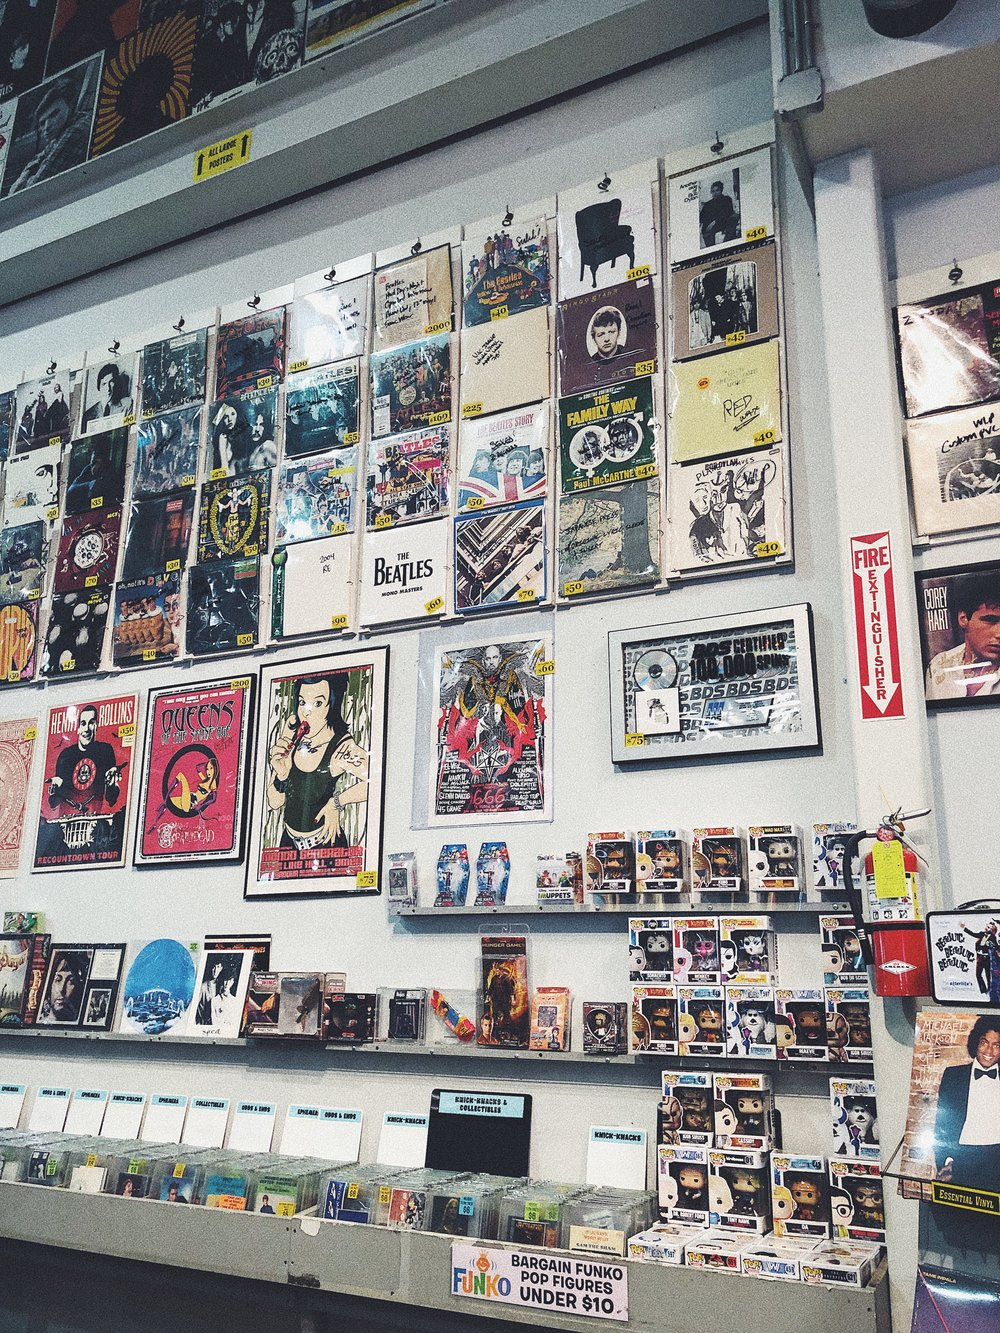 Amoeba Music - This shop has a huge selection of vinyl, video & CDs, plus live shows located on 6400 Sunset Blvd, Los Angeles, CA 90028.